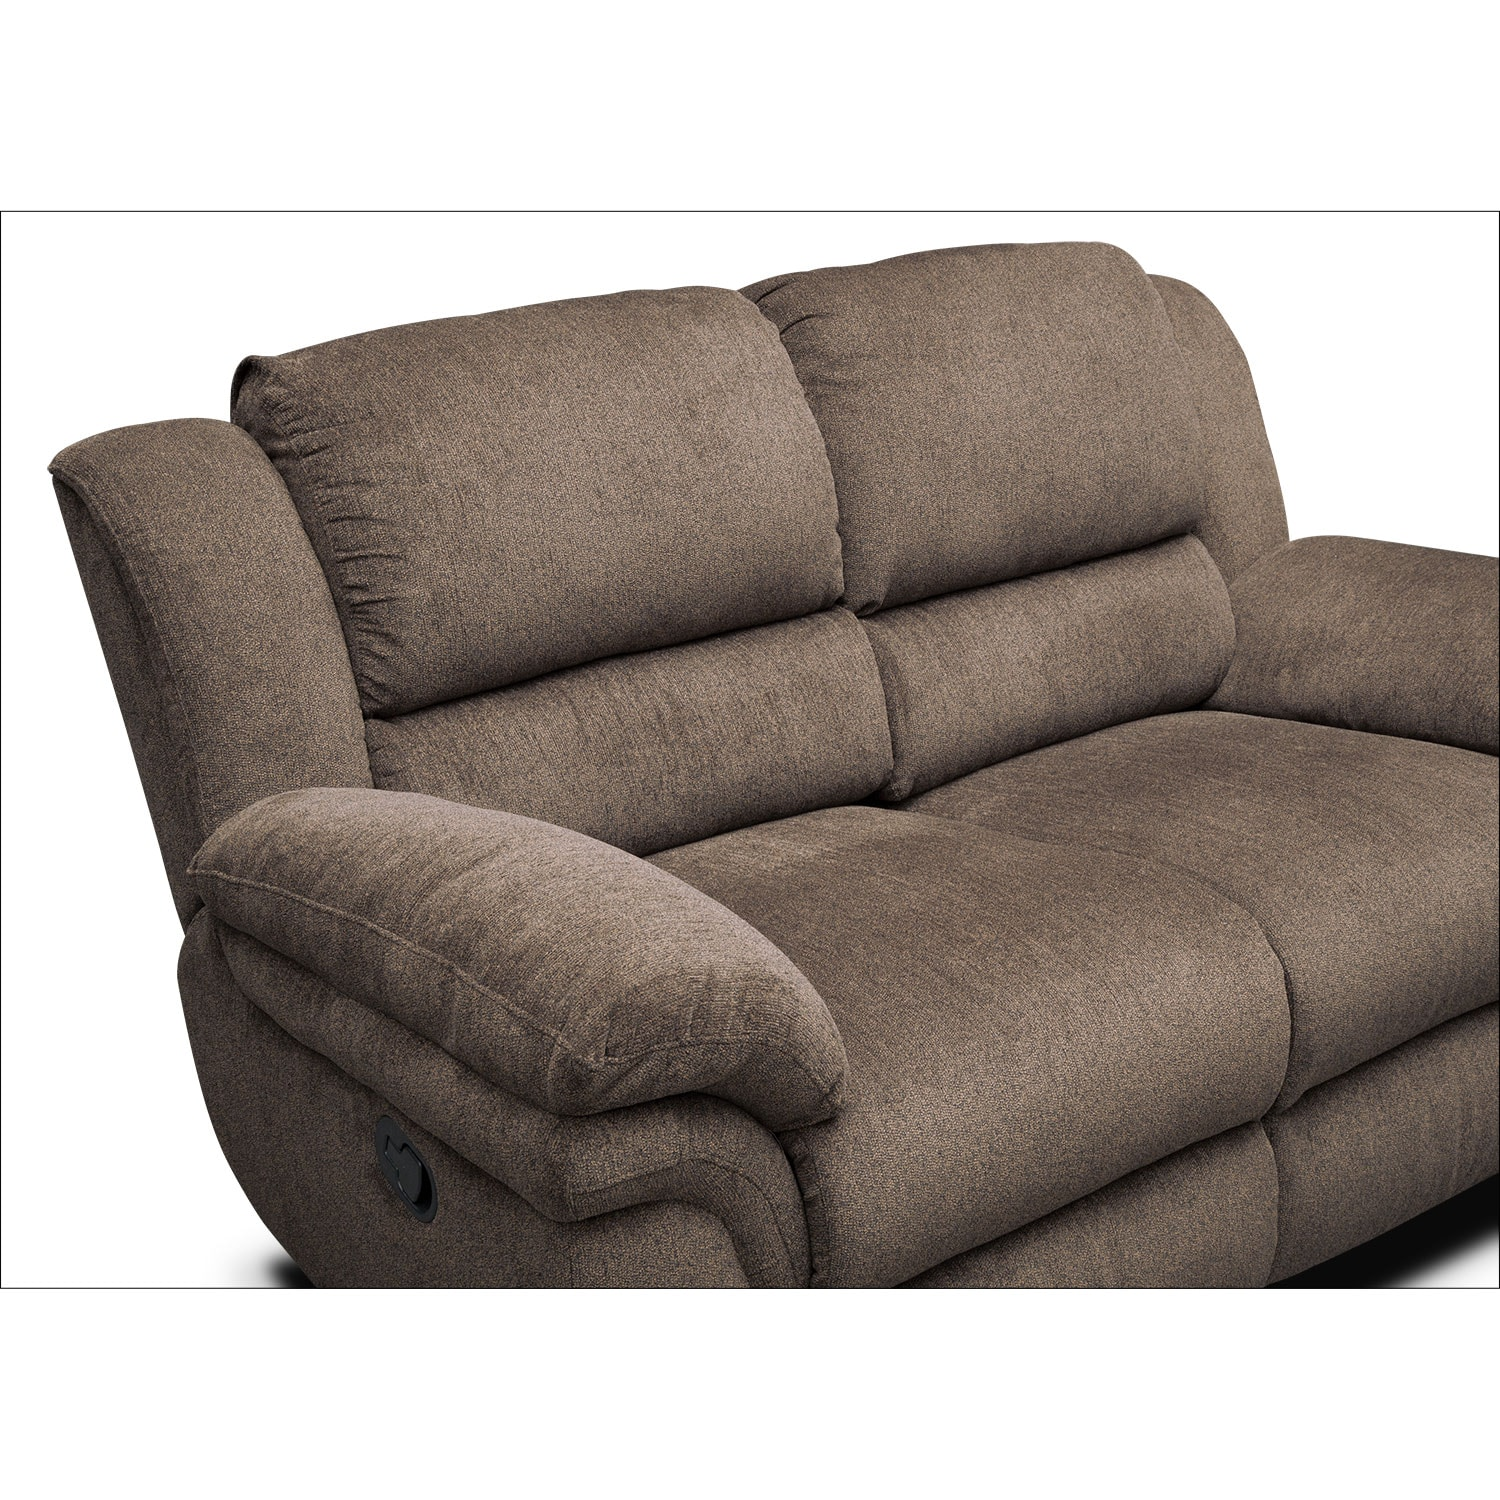 couch sofa luxury ideas room with and loveseat living